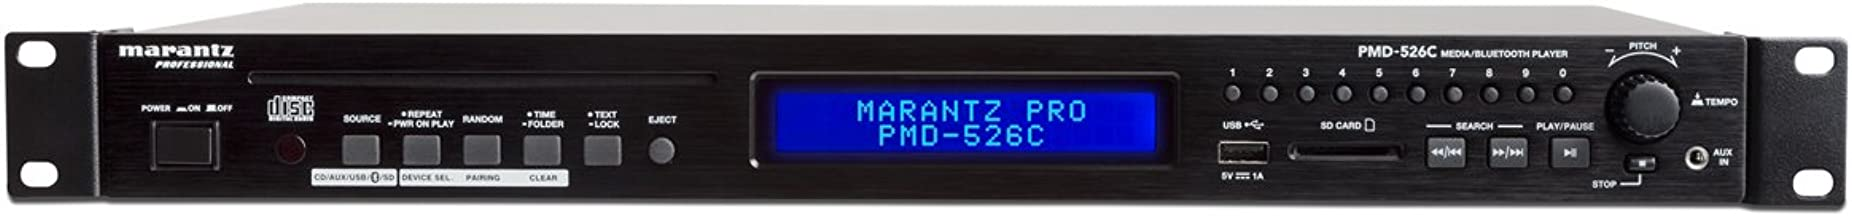 Marantz Professional PMD-526C | CD/Media/Bluetooth Player with RS-232 Control